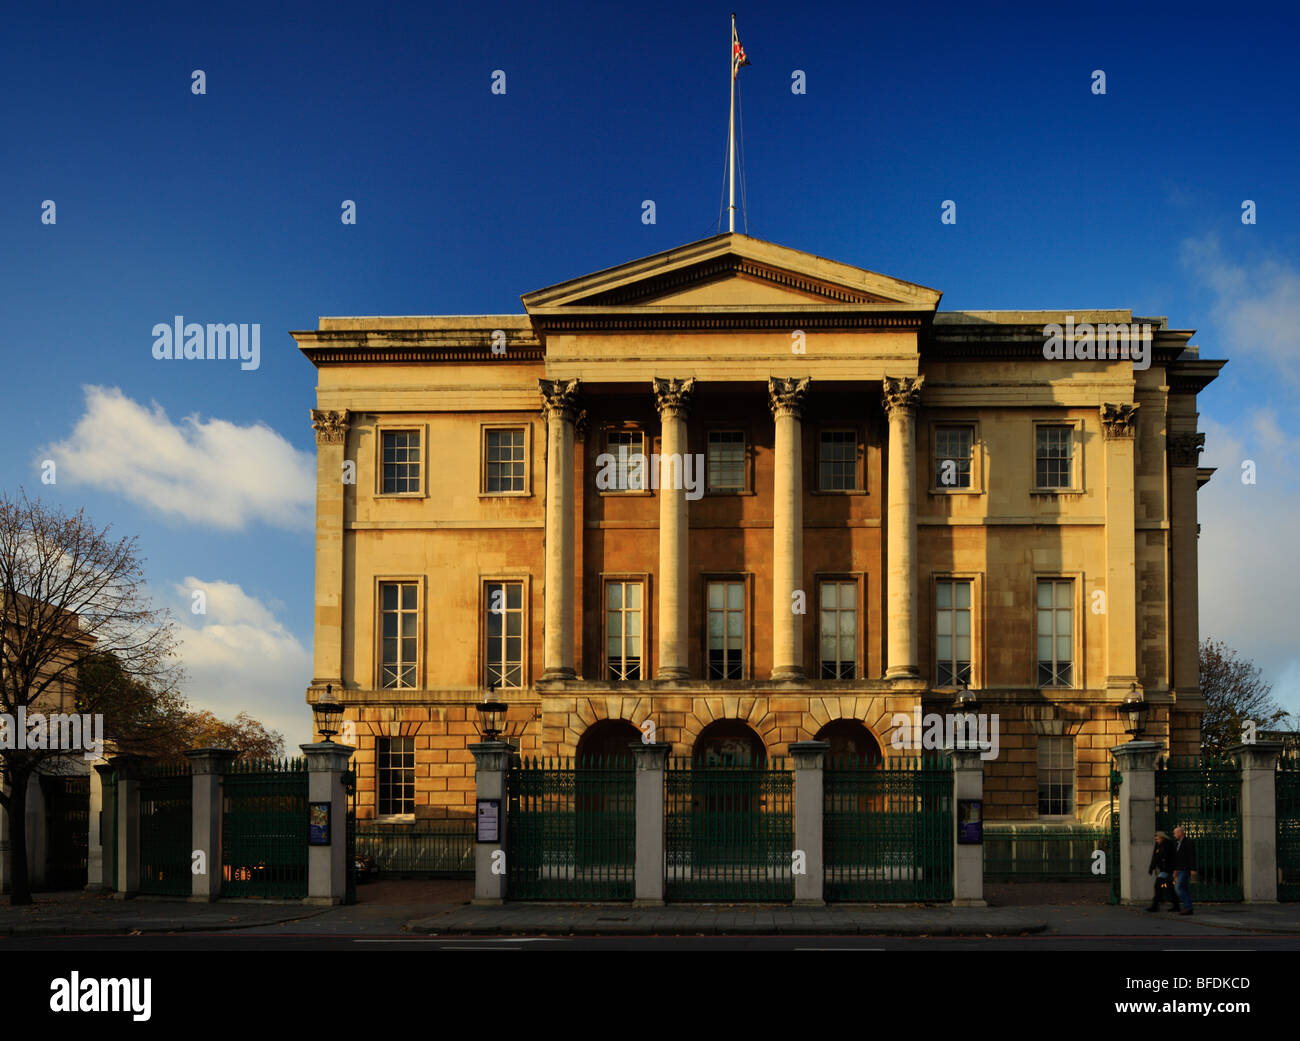 Apsley House Known as Number 1 London . Hyde Park Corner, London, England, UK. - Stock Image